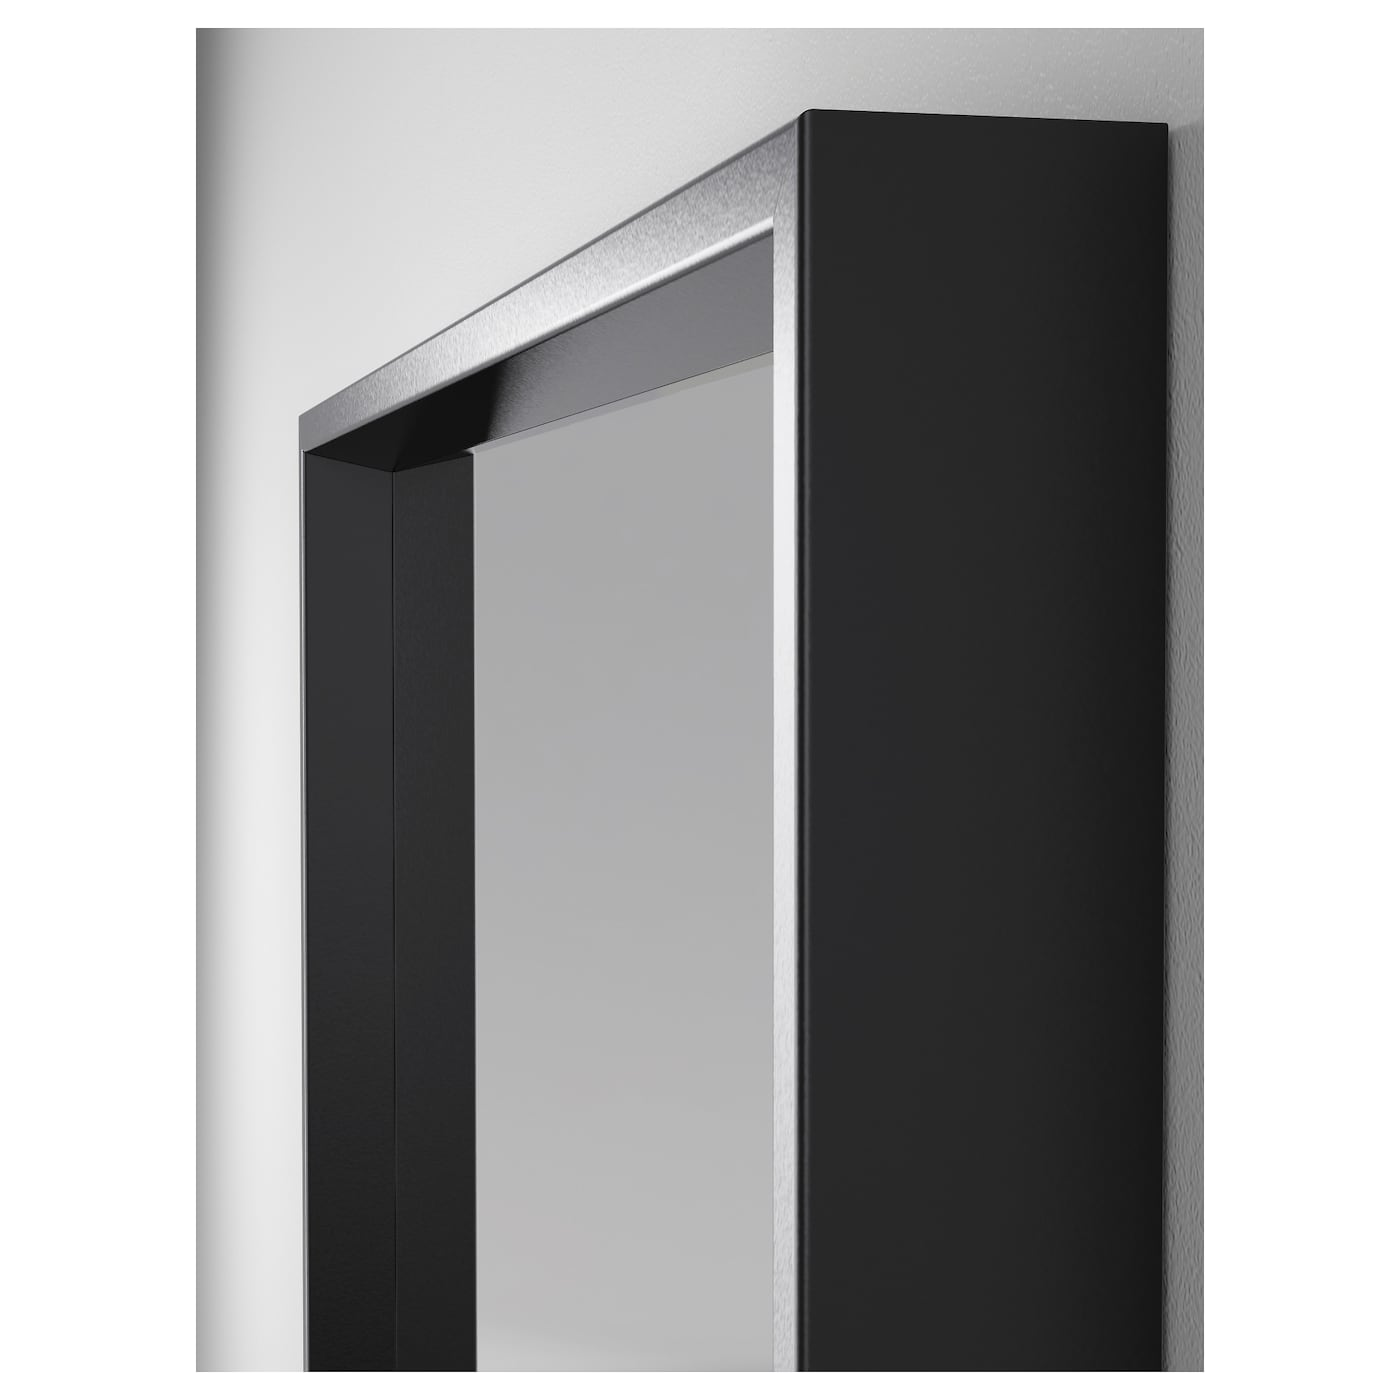 Nissedal mirror black 65x150 cm ikea for Mirror black